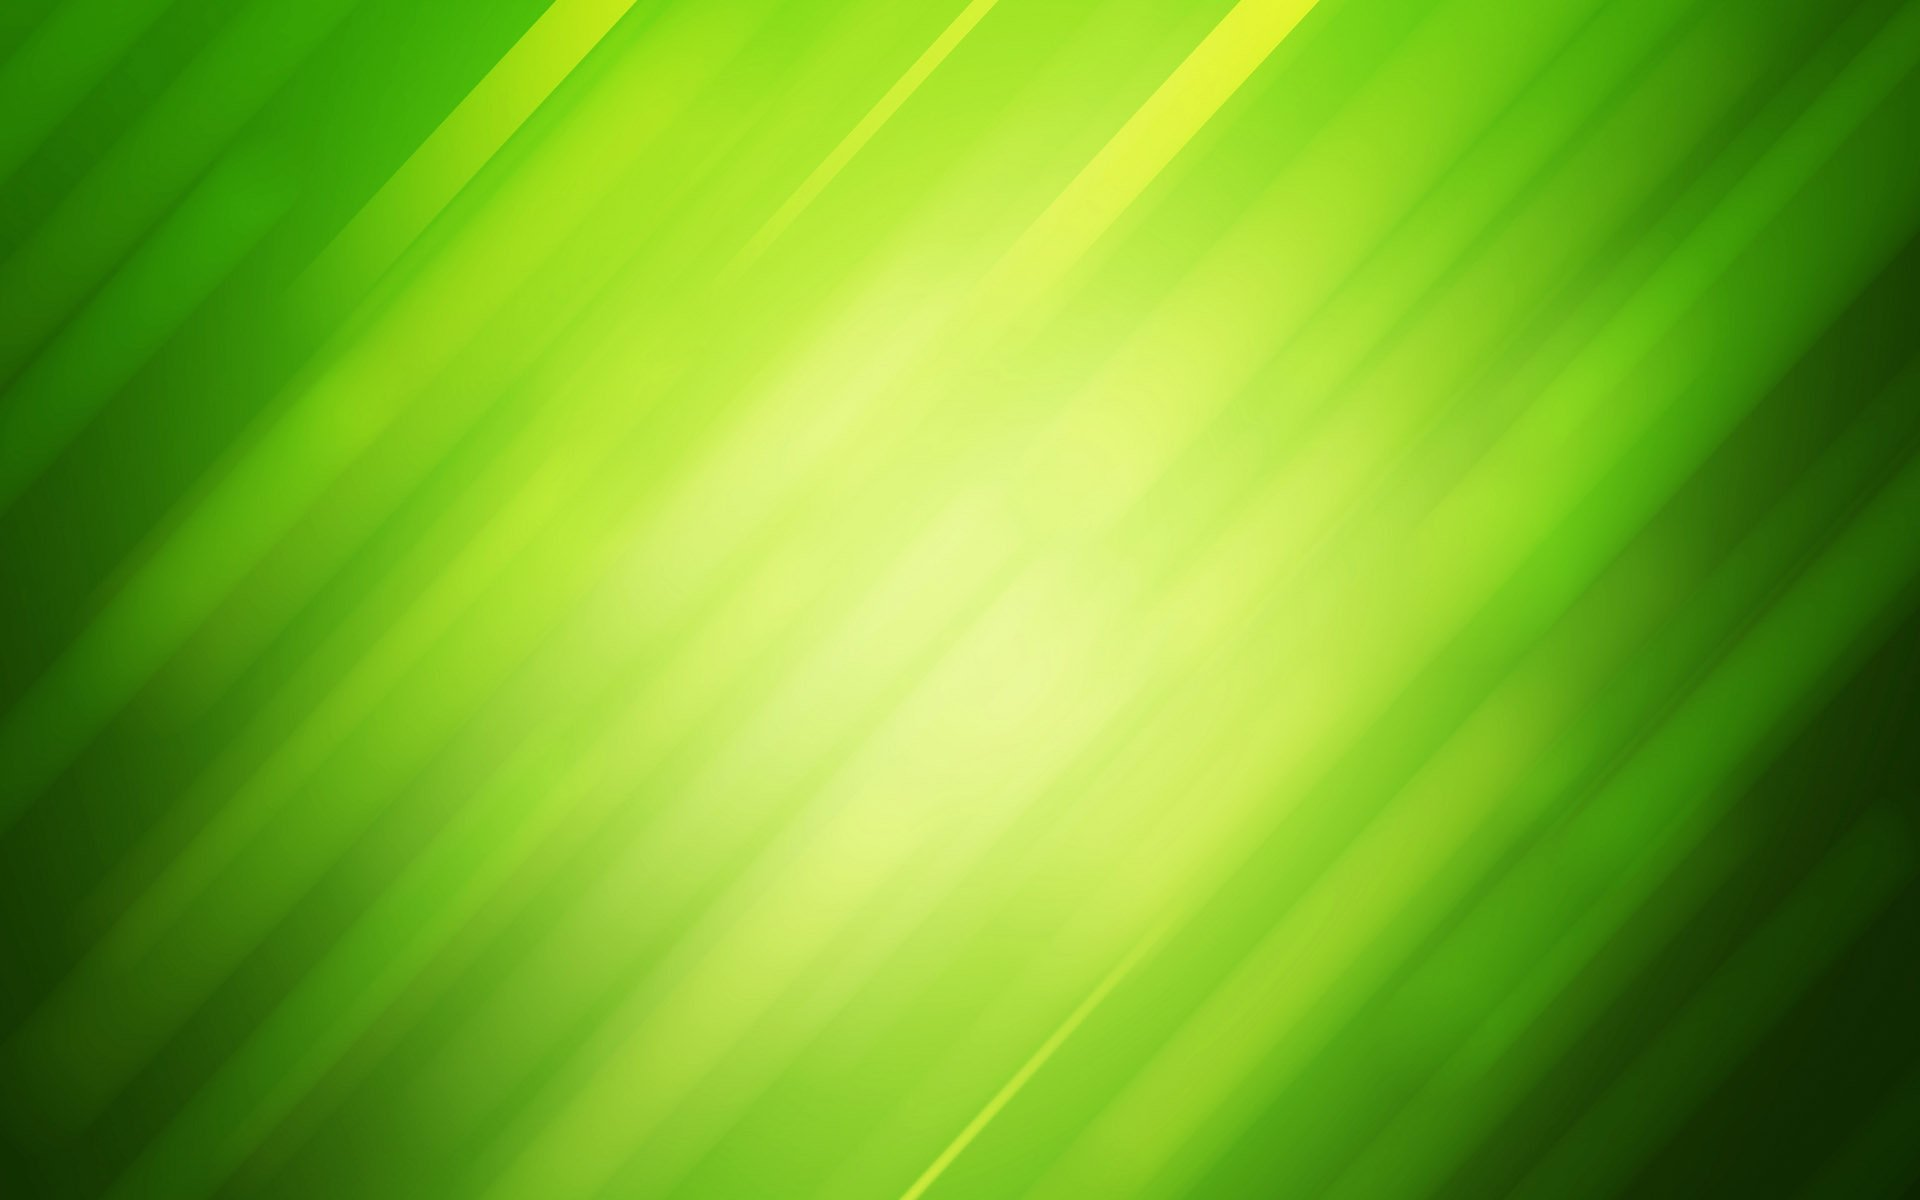 cool green light backgrounds green light wa 1920x1200